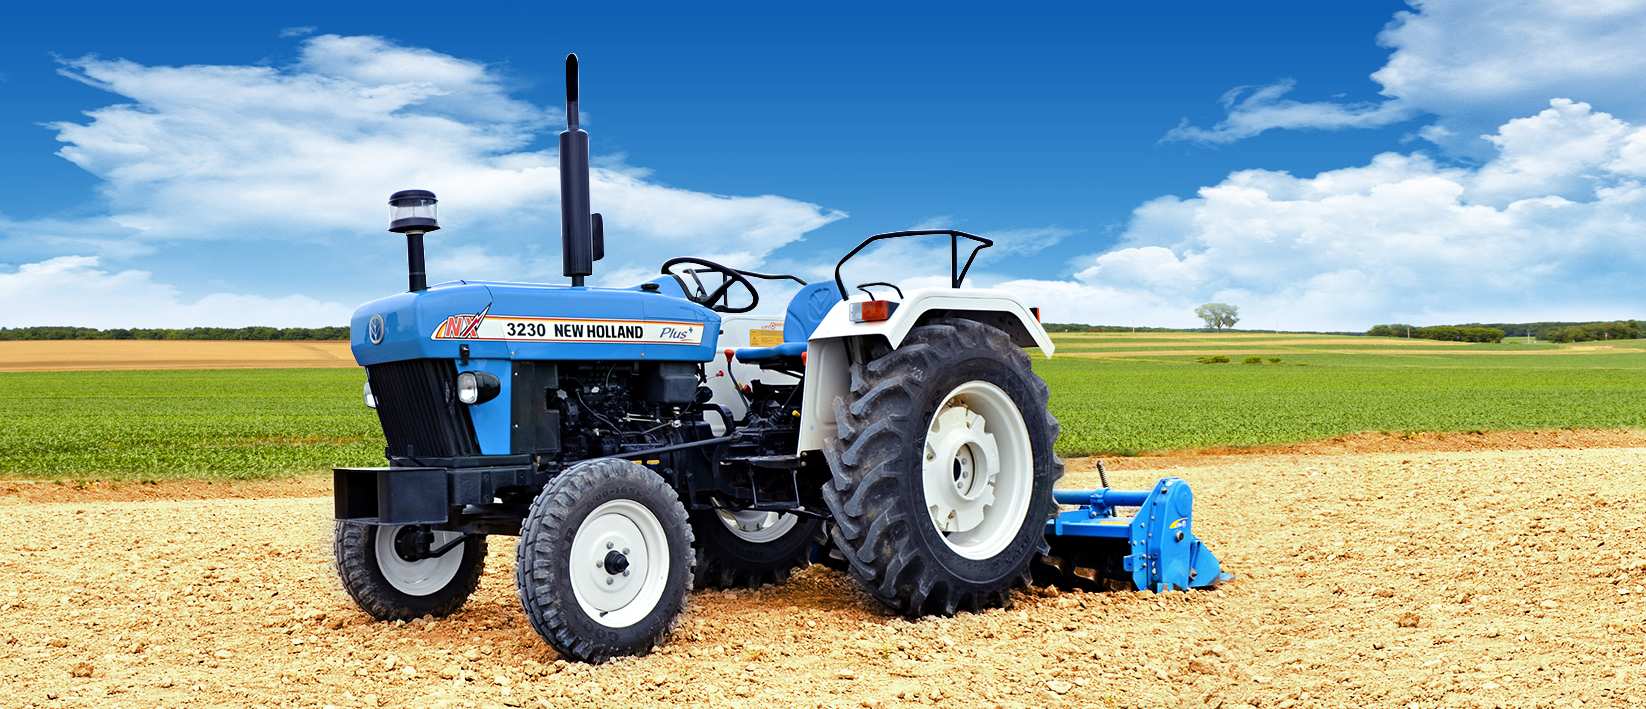 New holland d photo - 1